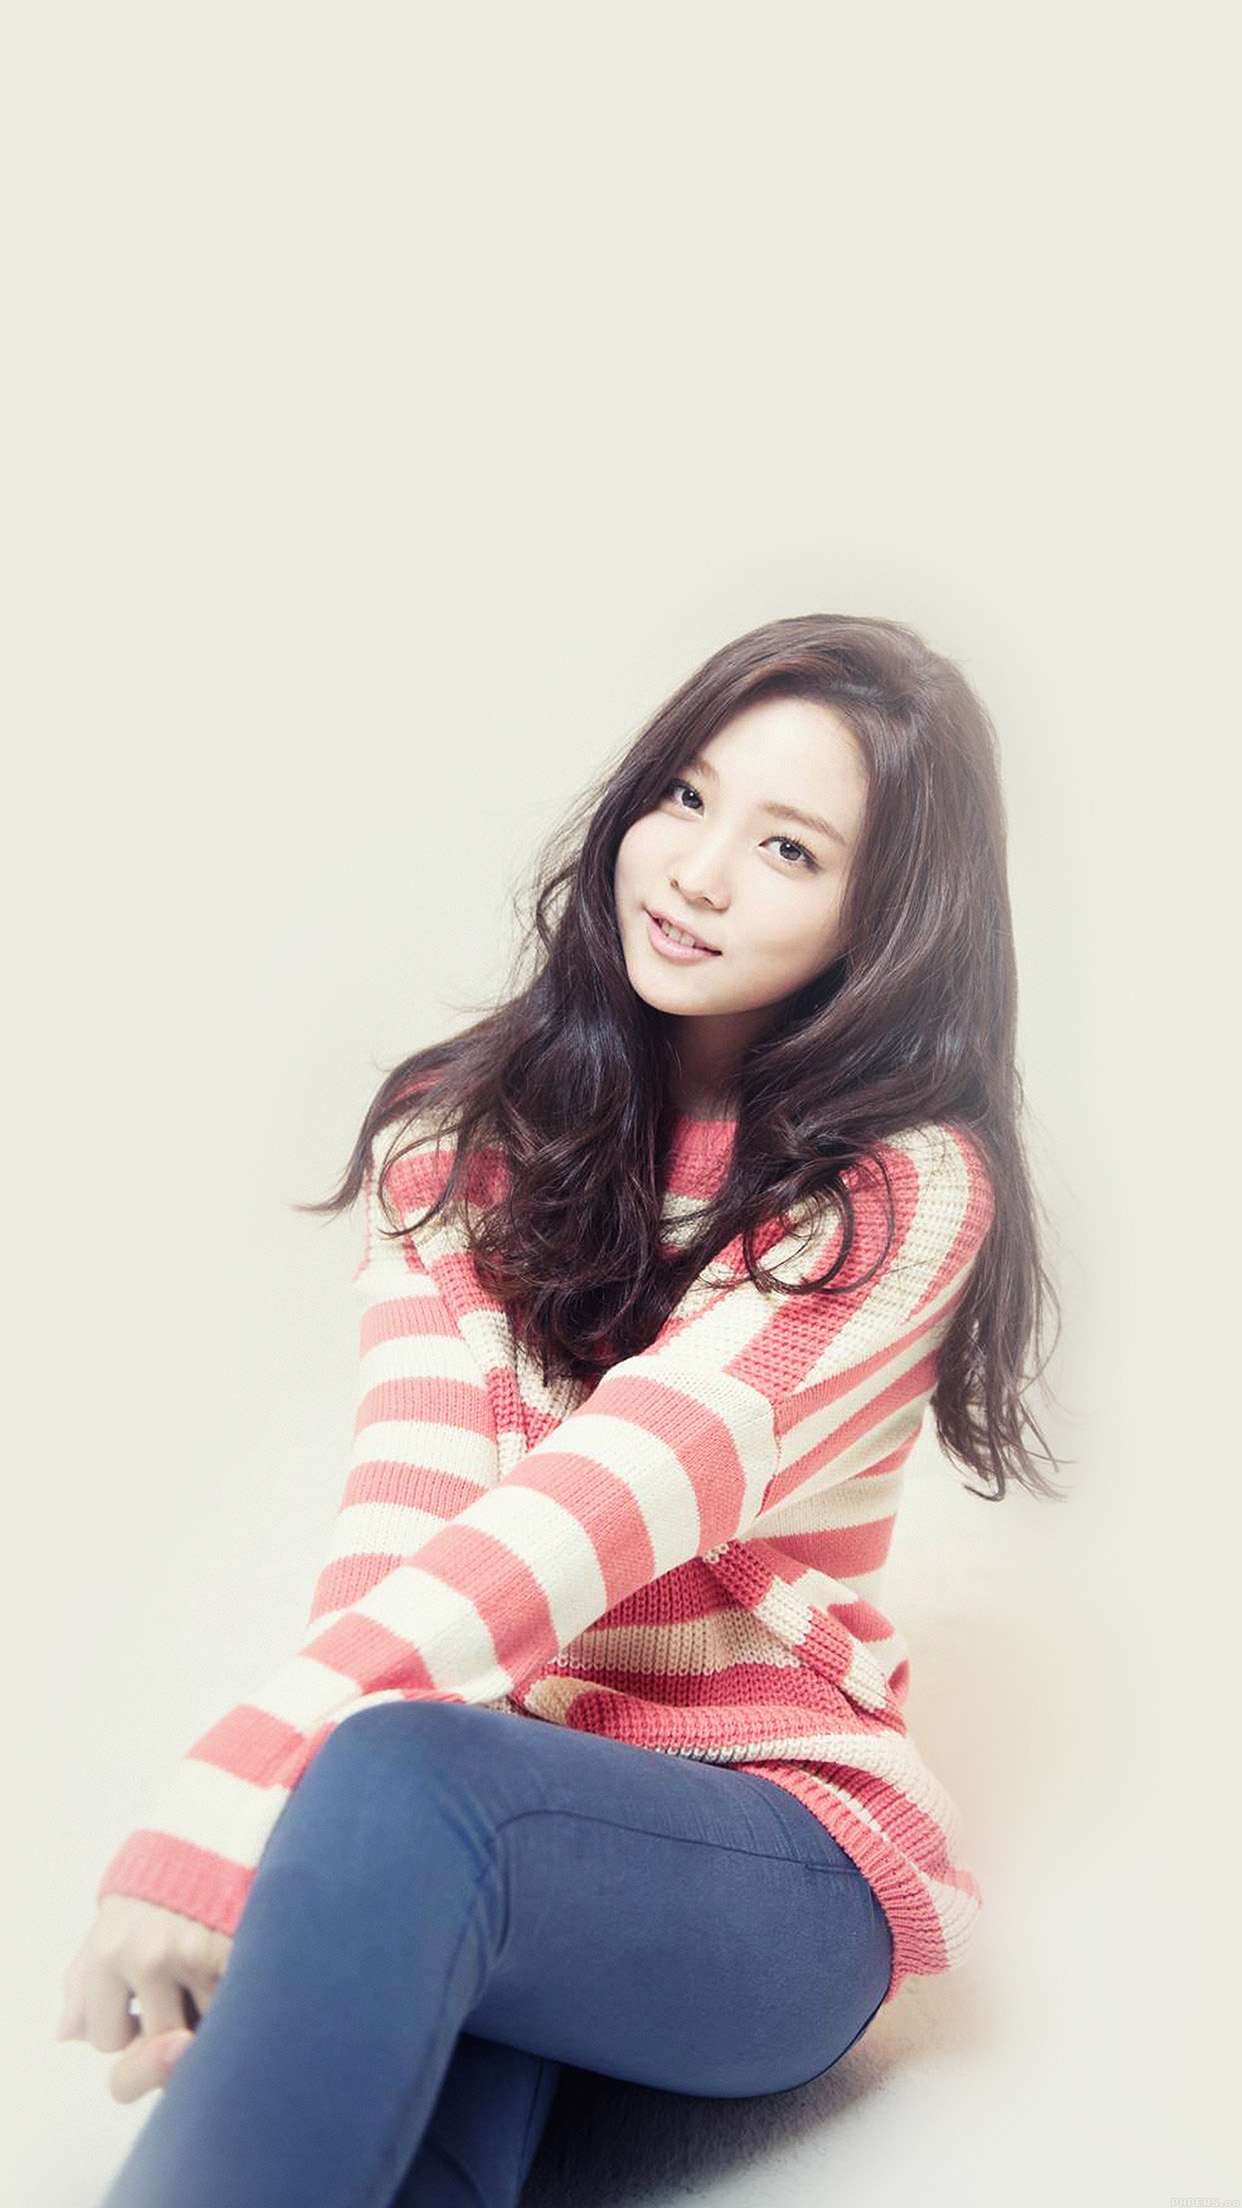 Yoon Sohee Kpop Girl Cute Android wallpaper